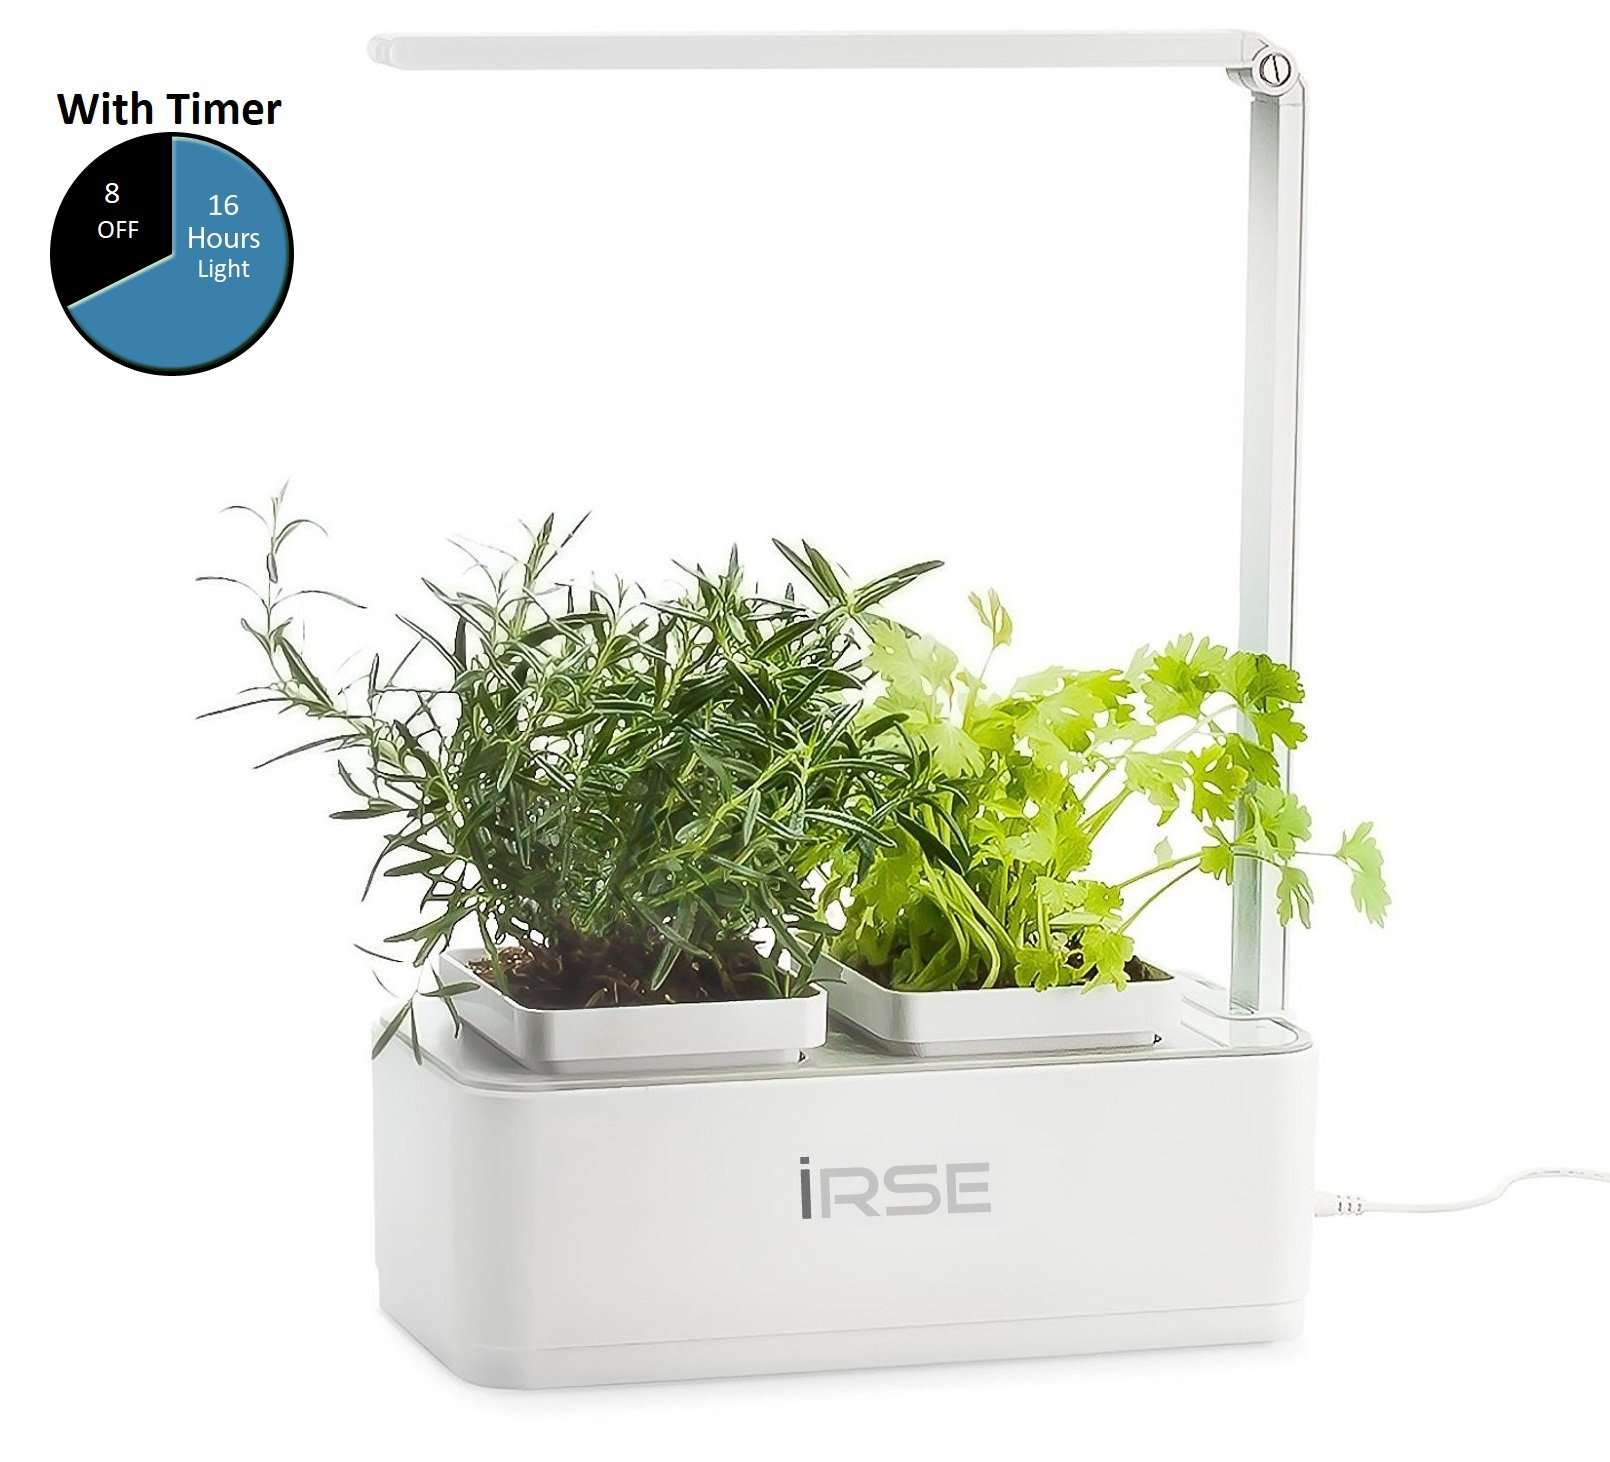 Irse Indoor Garden Kit With Grow Light Led Growing System